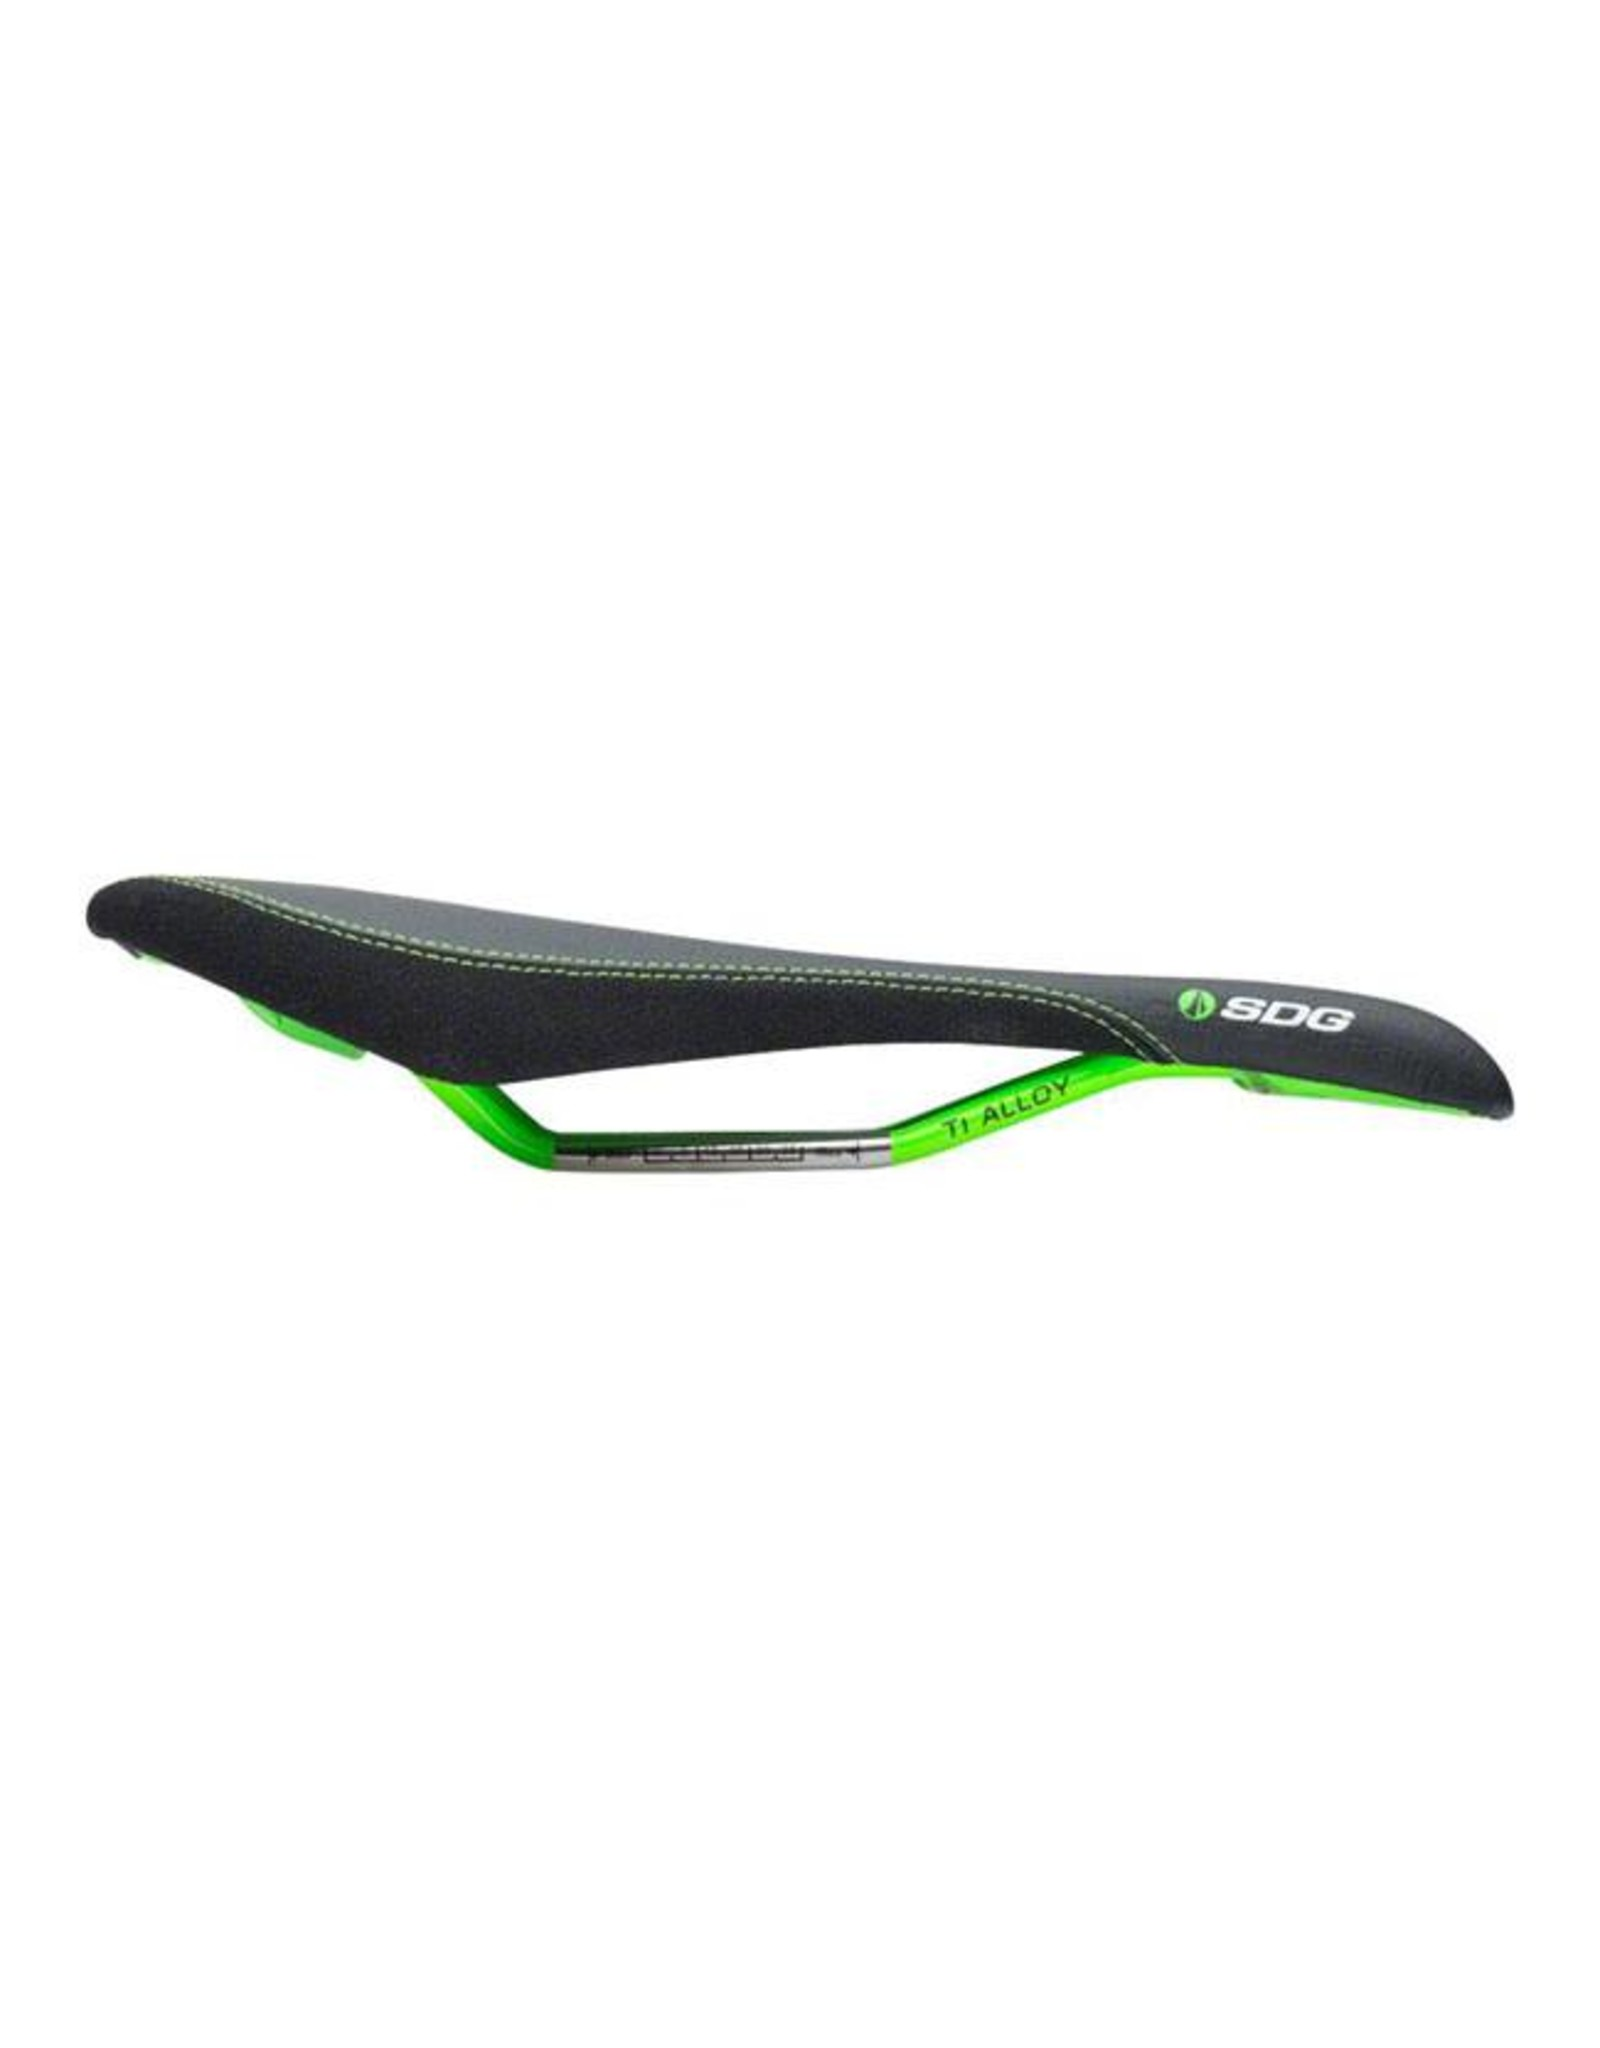 SDG SDG Circuit MTN Saddle: Ti-Alloy Rails, Black Microfiber Top with Black Aramid Sides, Green Embossed Graphics, Base, and Painted Rails